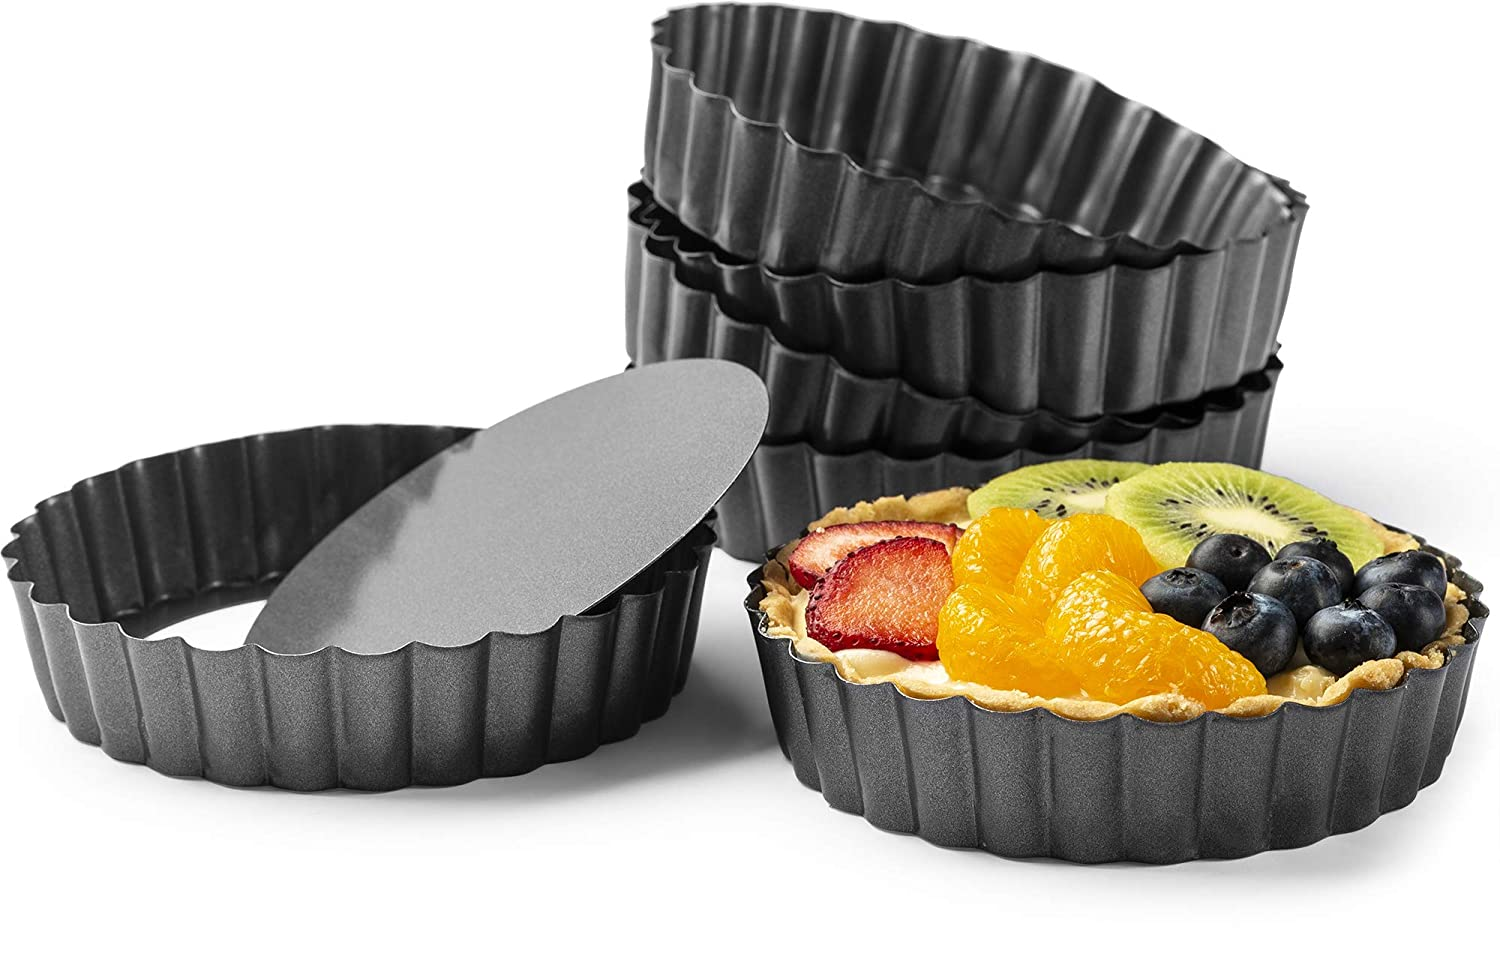 """Gourmia GPA9375 Mini Tart Pans with Removable Bottom - 6 Pack, 5"""" Diameter, 1"""" Depth – Non Stick Carbon Steel - Miniature Molds For Pies, Cheese Cakes, Desserts, Quiche pan and More"""